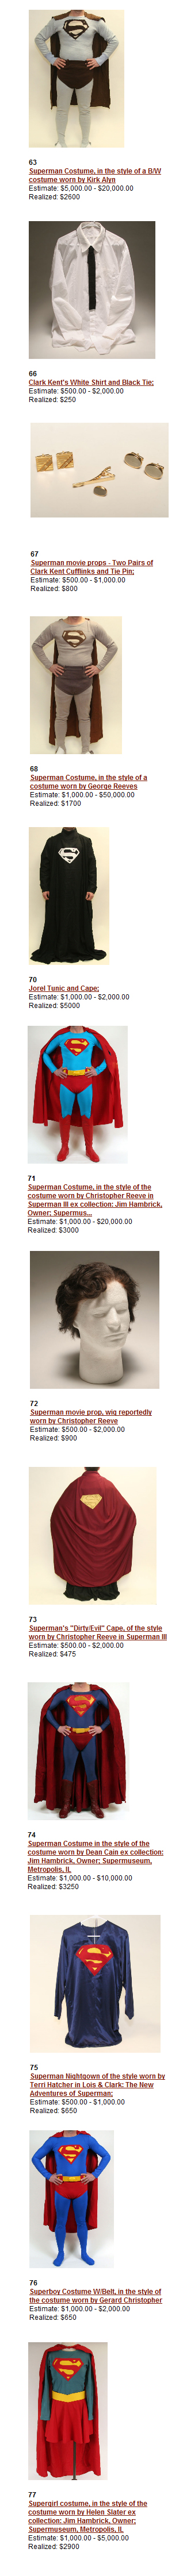 """Museum Collection of Superhero Memorabilia"" Superman Costume Auction Results"